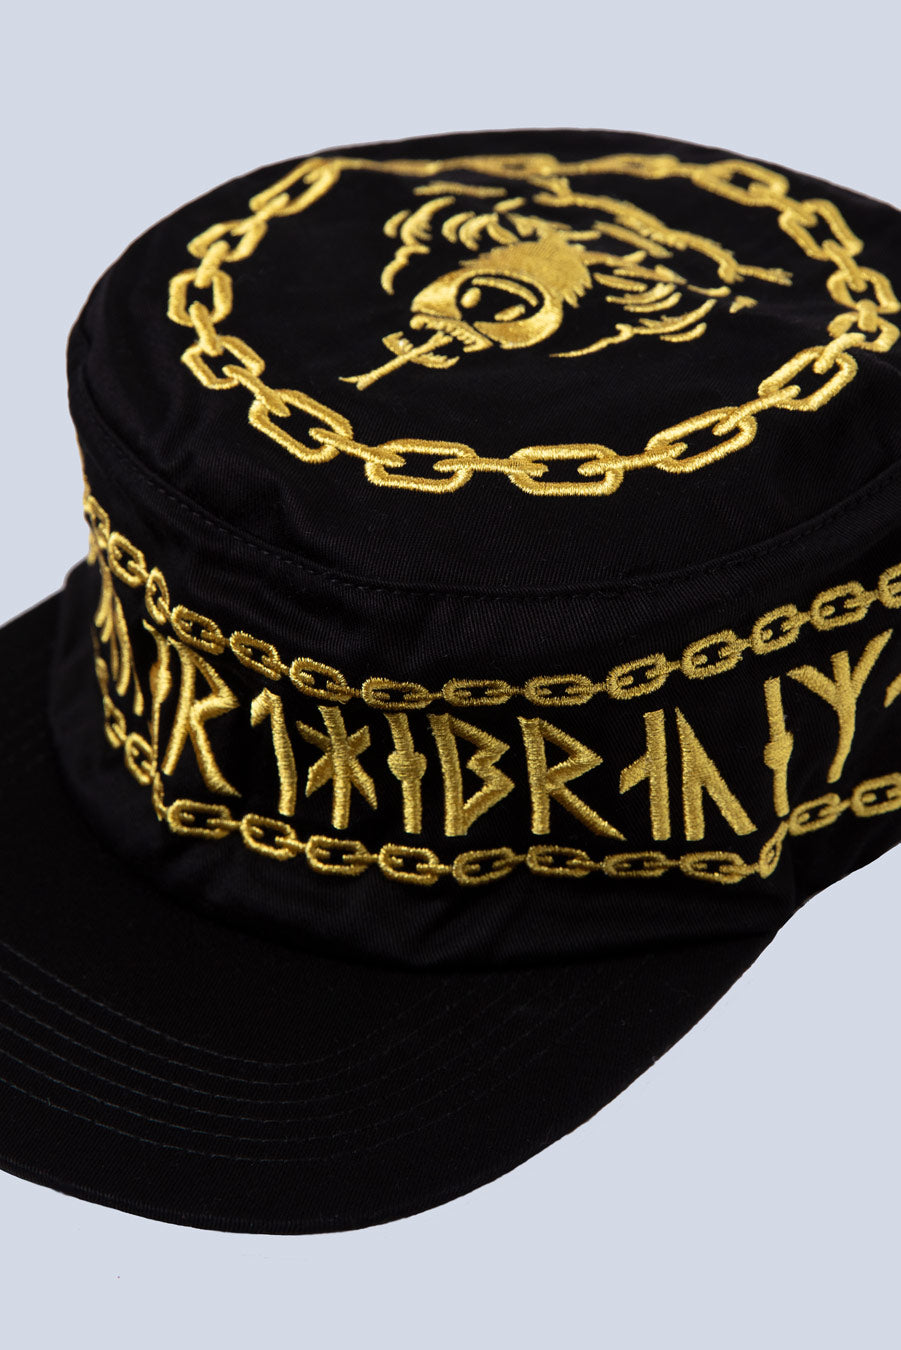 Mishka 2.0 Death Adder Chain Painter Cap